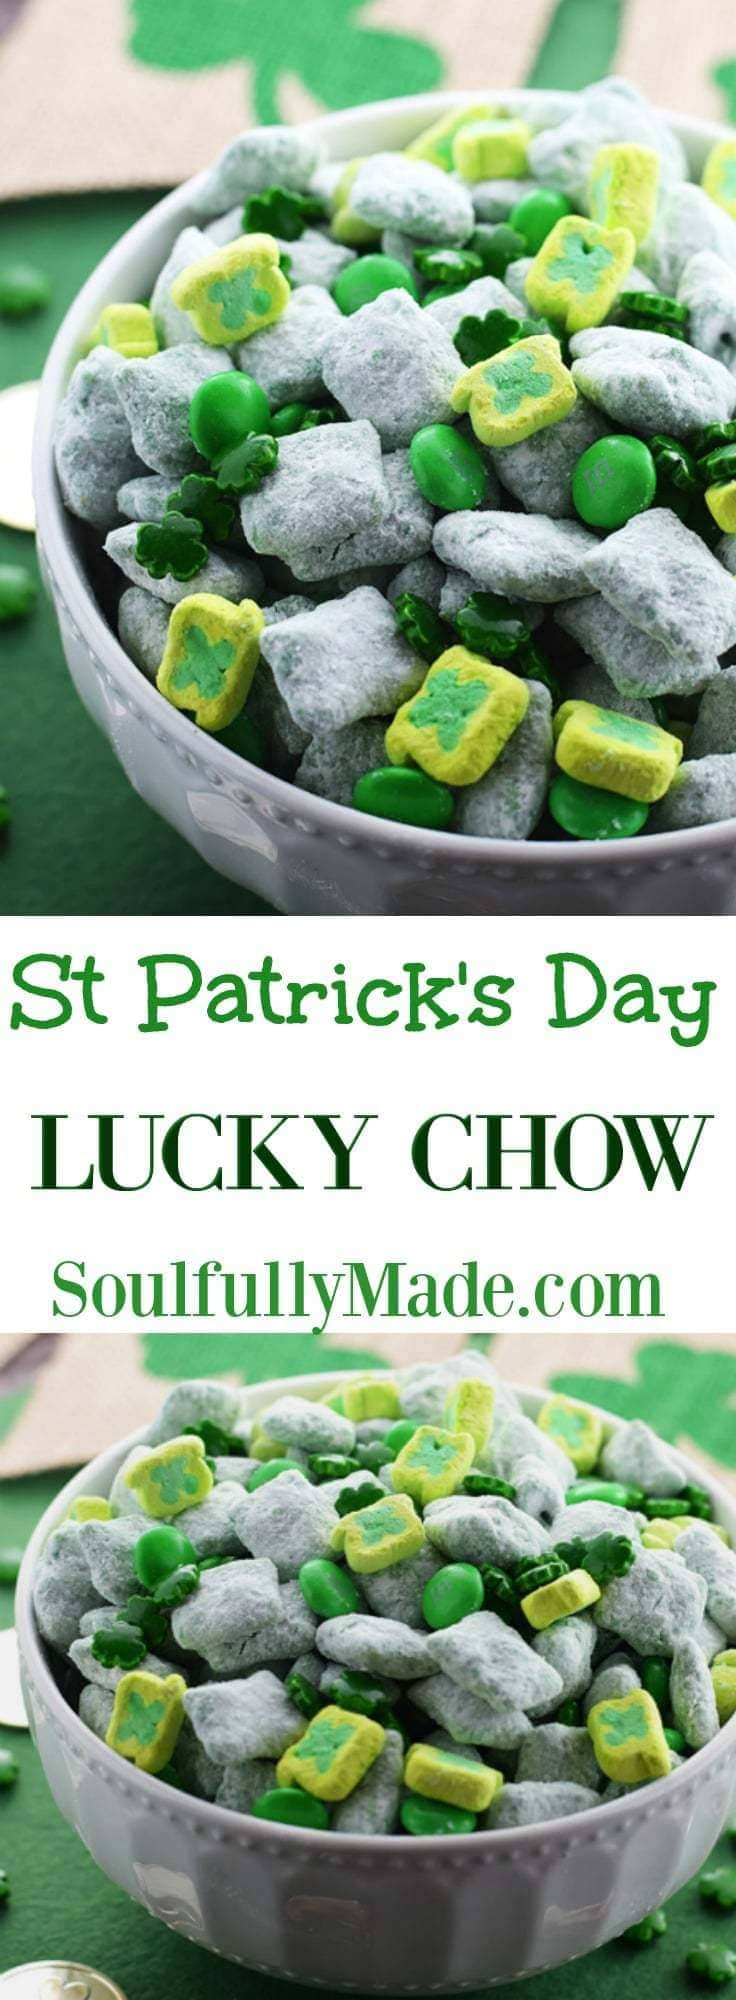 St Patricks Day Lucky Chow